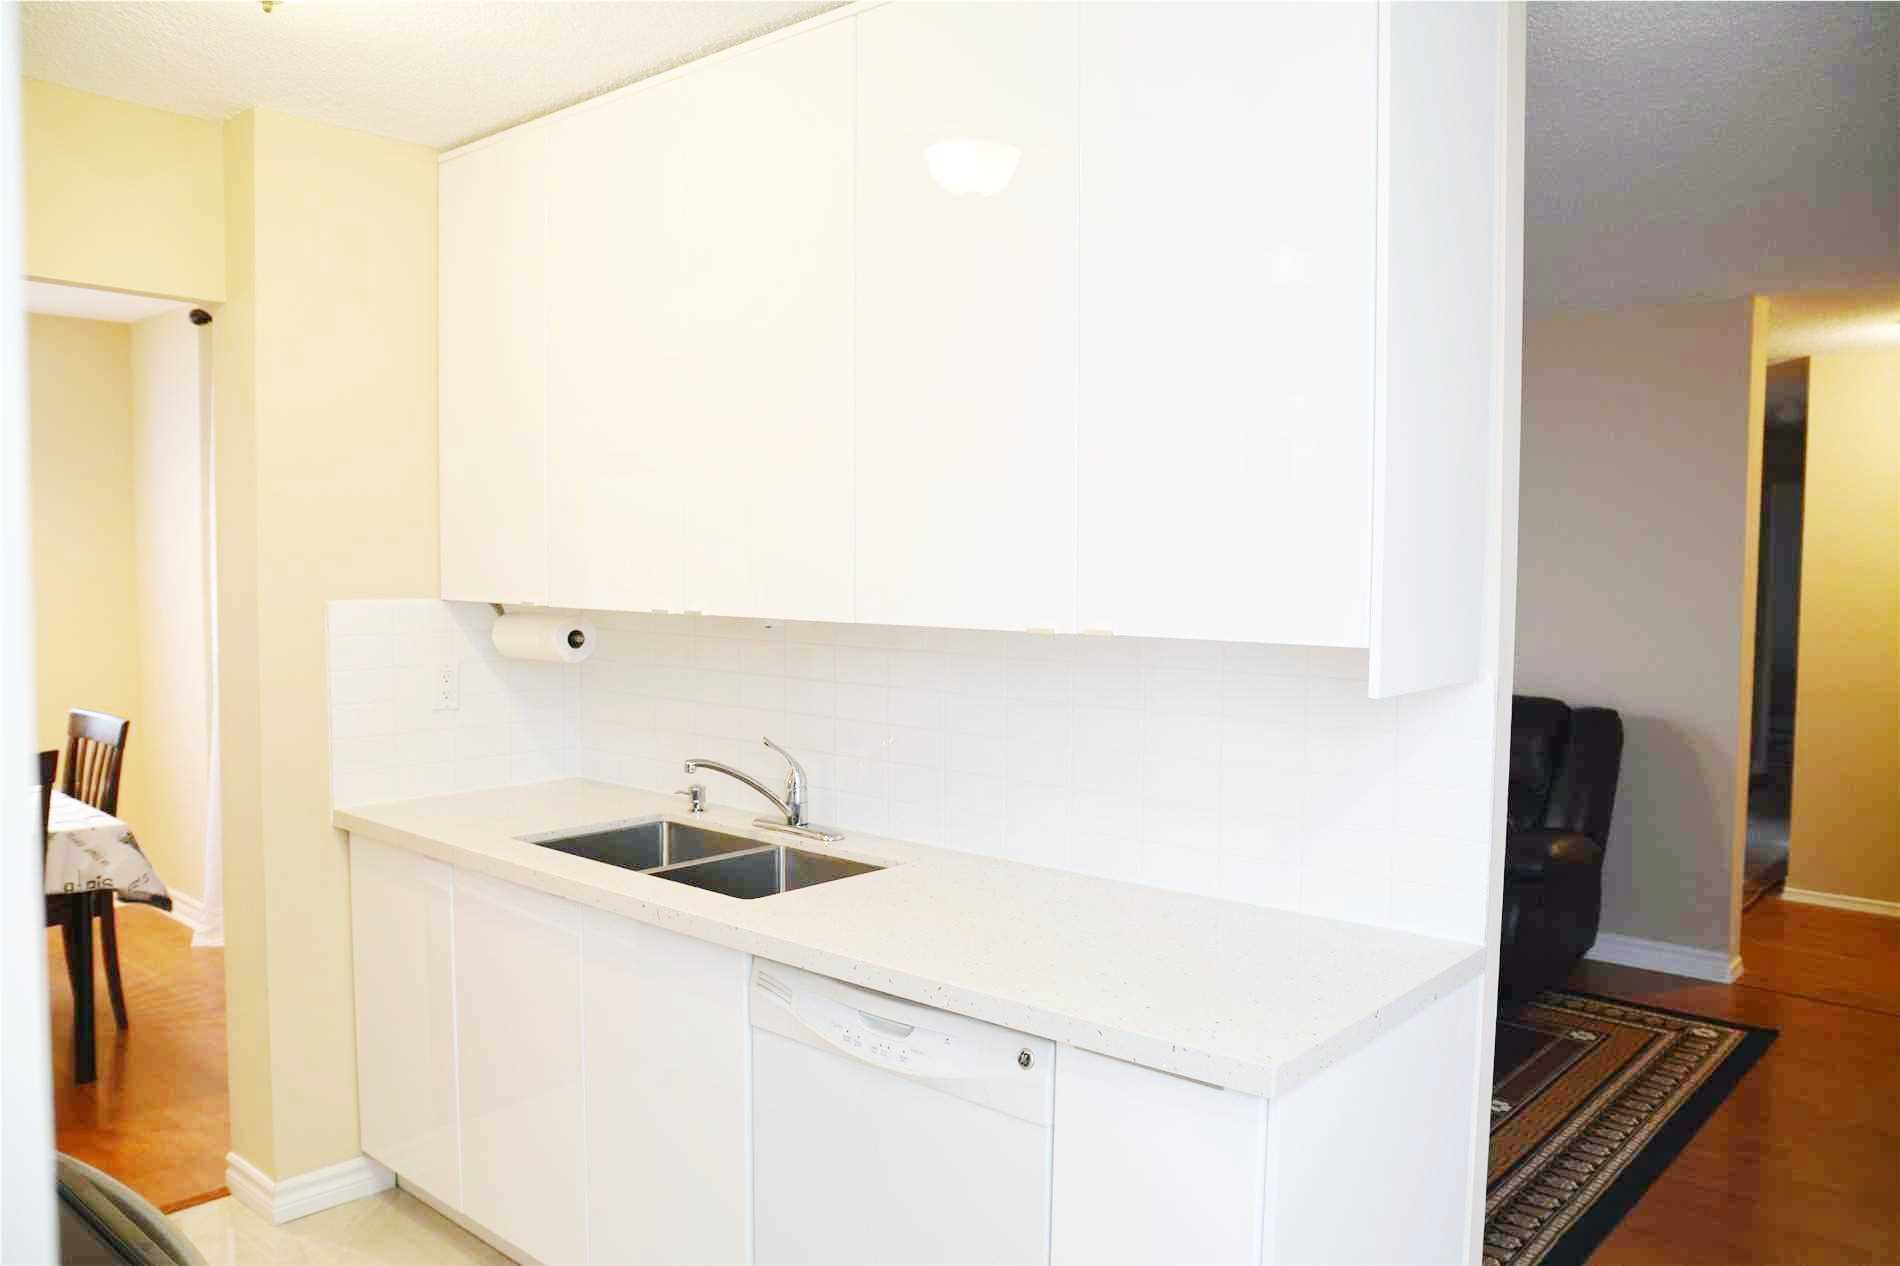 Image 12 of 14 showing inside of 3 Bedroom Condo Apt Apartment for Lease at 205 Hilda Ave Unit# 2104, Toronto M2M4B1